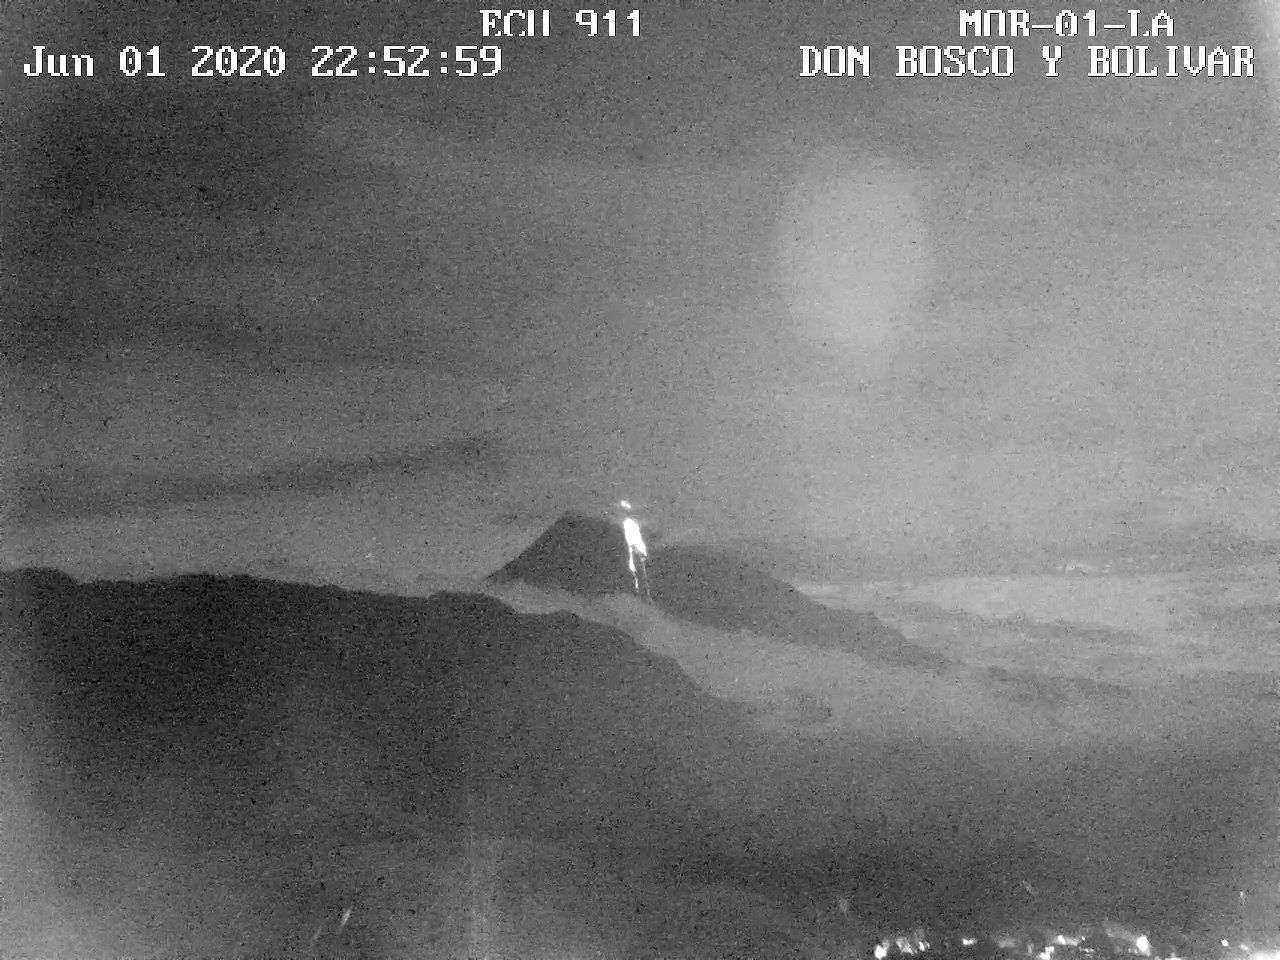 Sangay - Lava flow on the SE flank on 01.06.2020 / 22h52, with a covered summit - IGEPN ECU-911 webcam